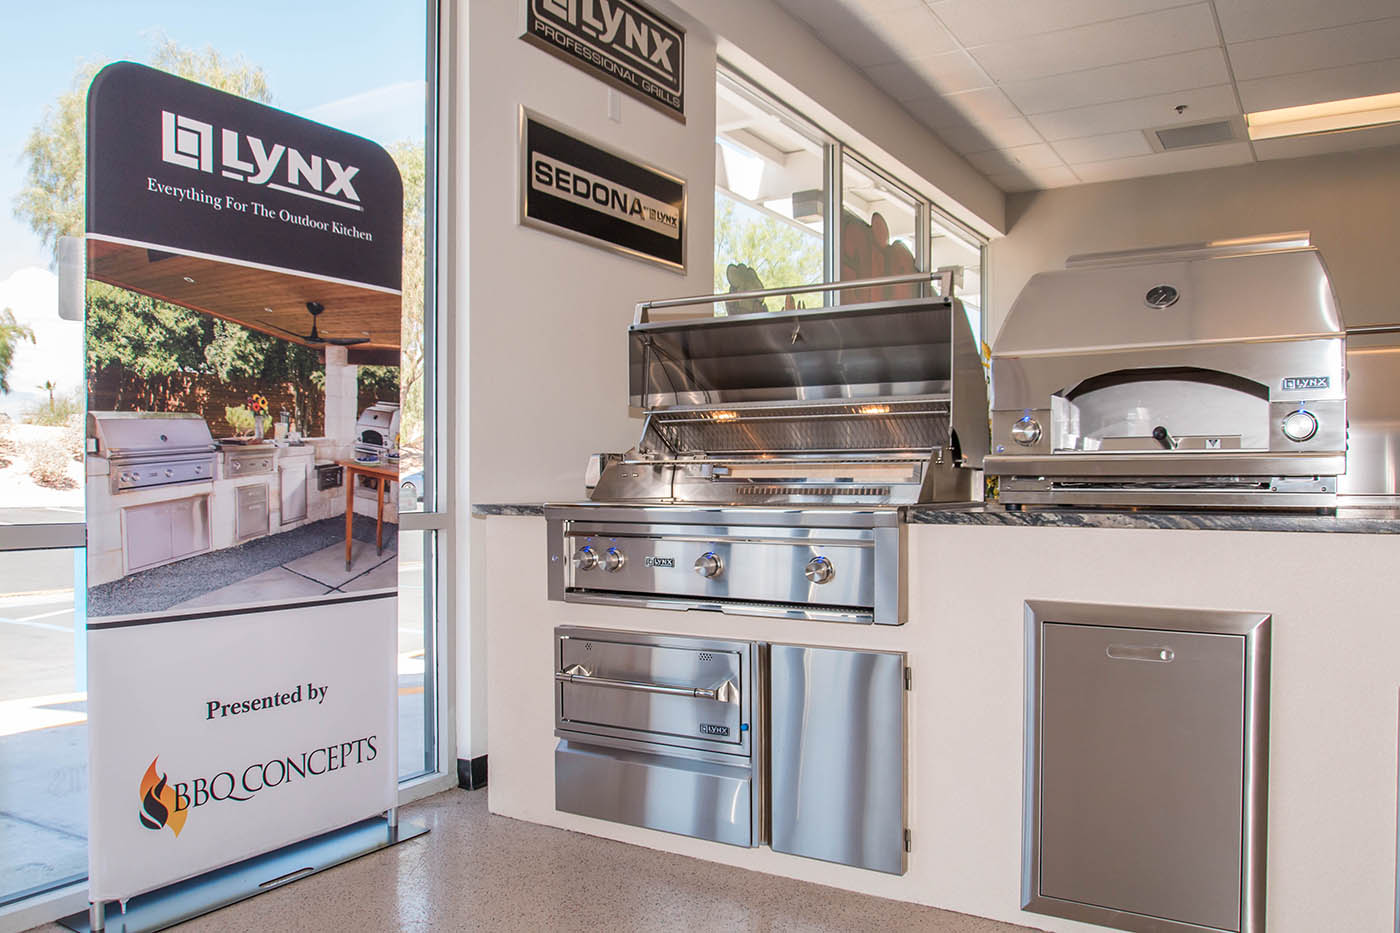 Custom Lynx Professional Outdoor Kitchen U0026 Components By BBQ Concepts Of  Las Vegas, Nevada